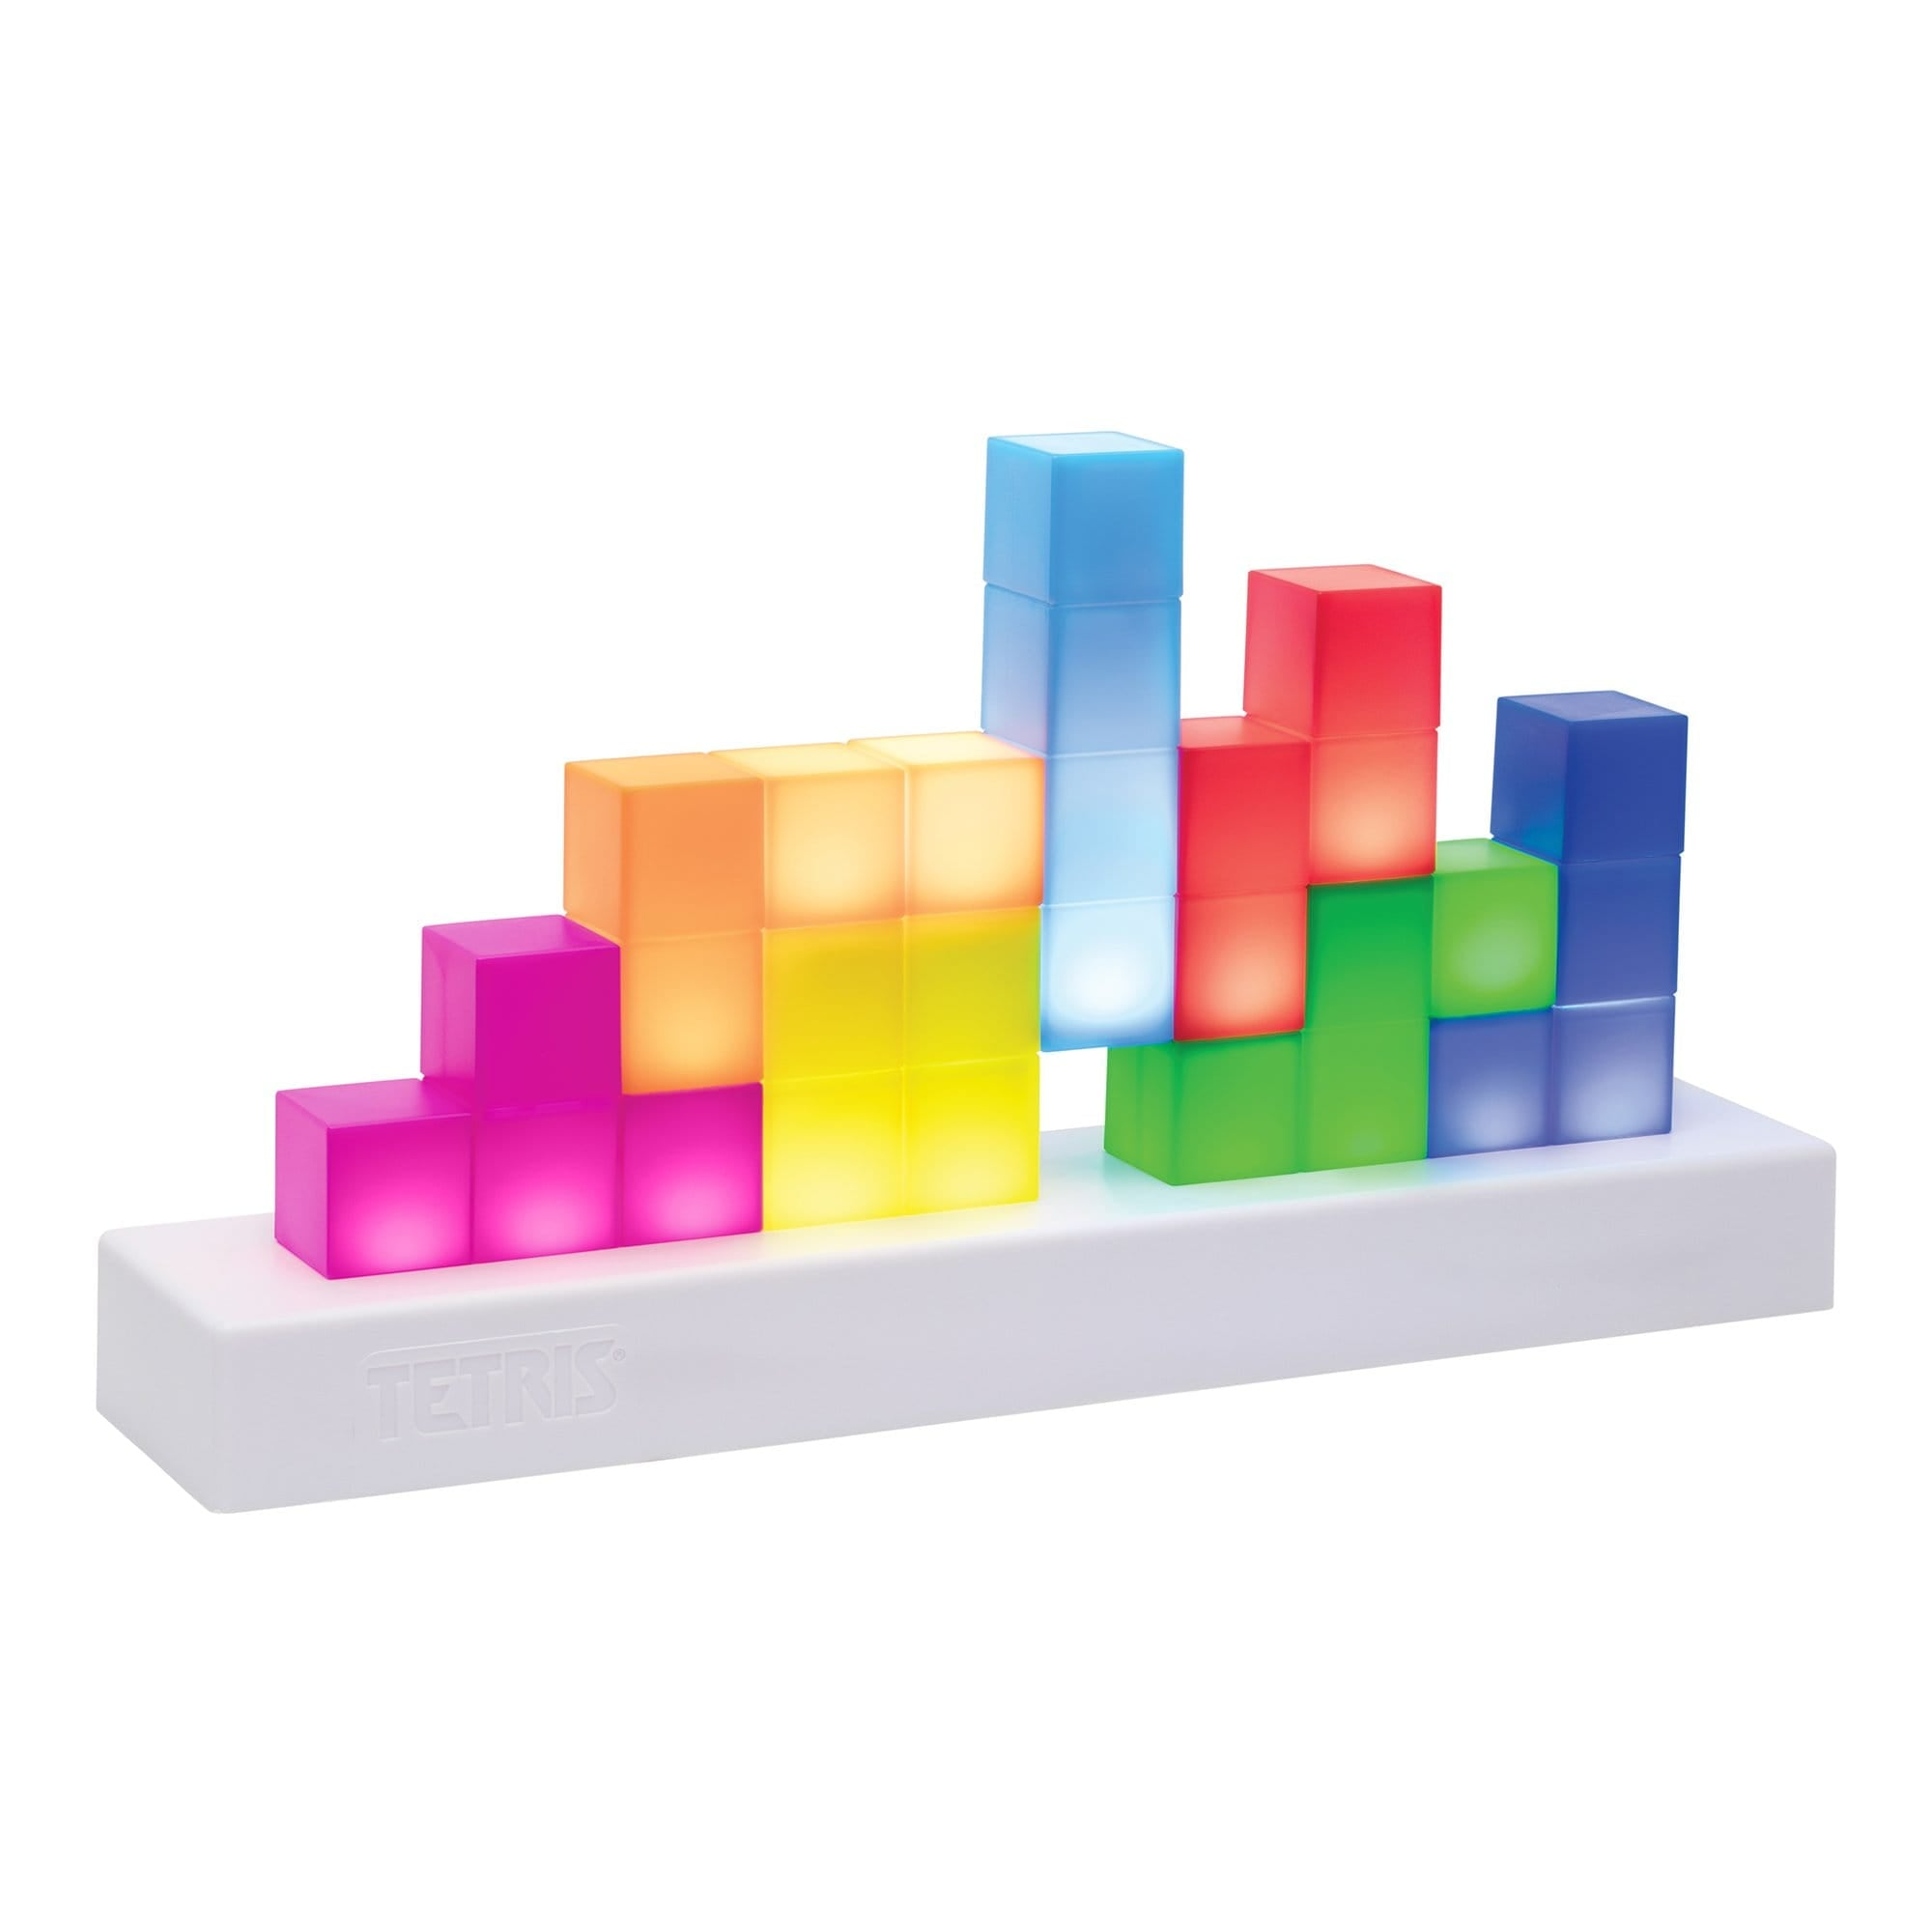 Tetris light made by Paladone, sold by HIDEit Mounts. Light up blocks stacked on a white base.